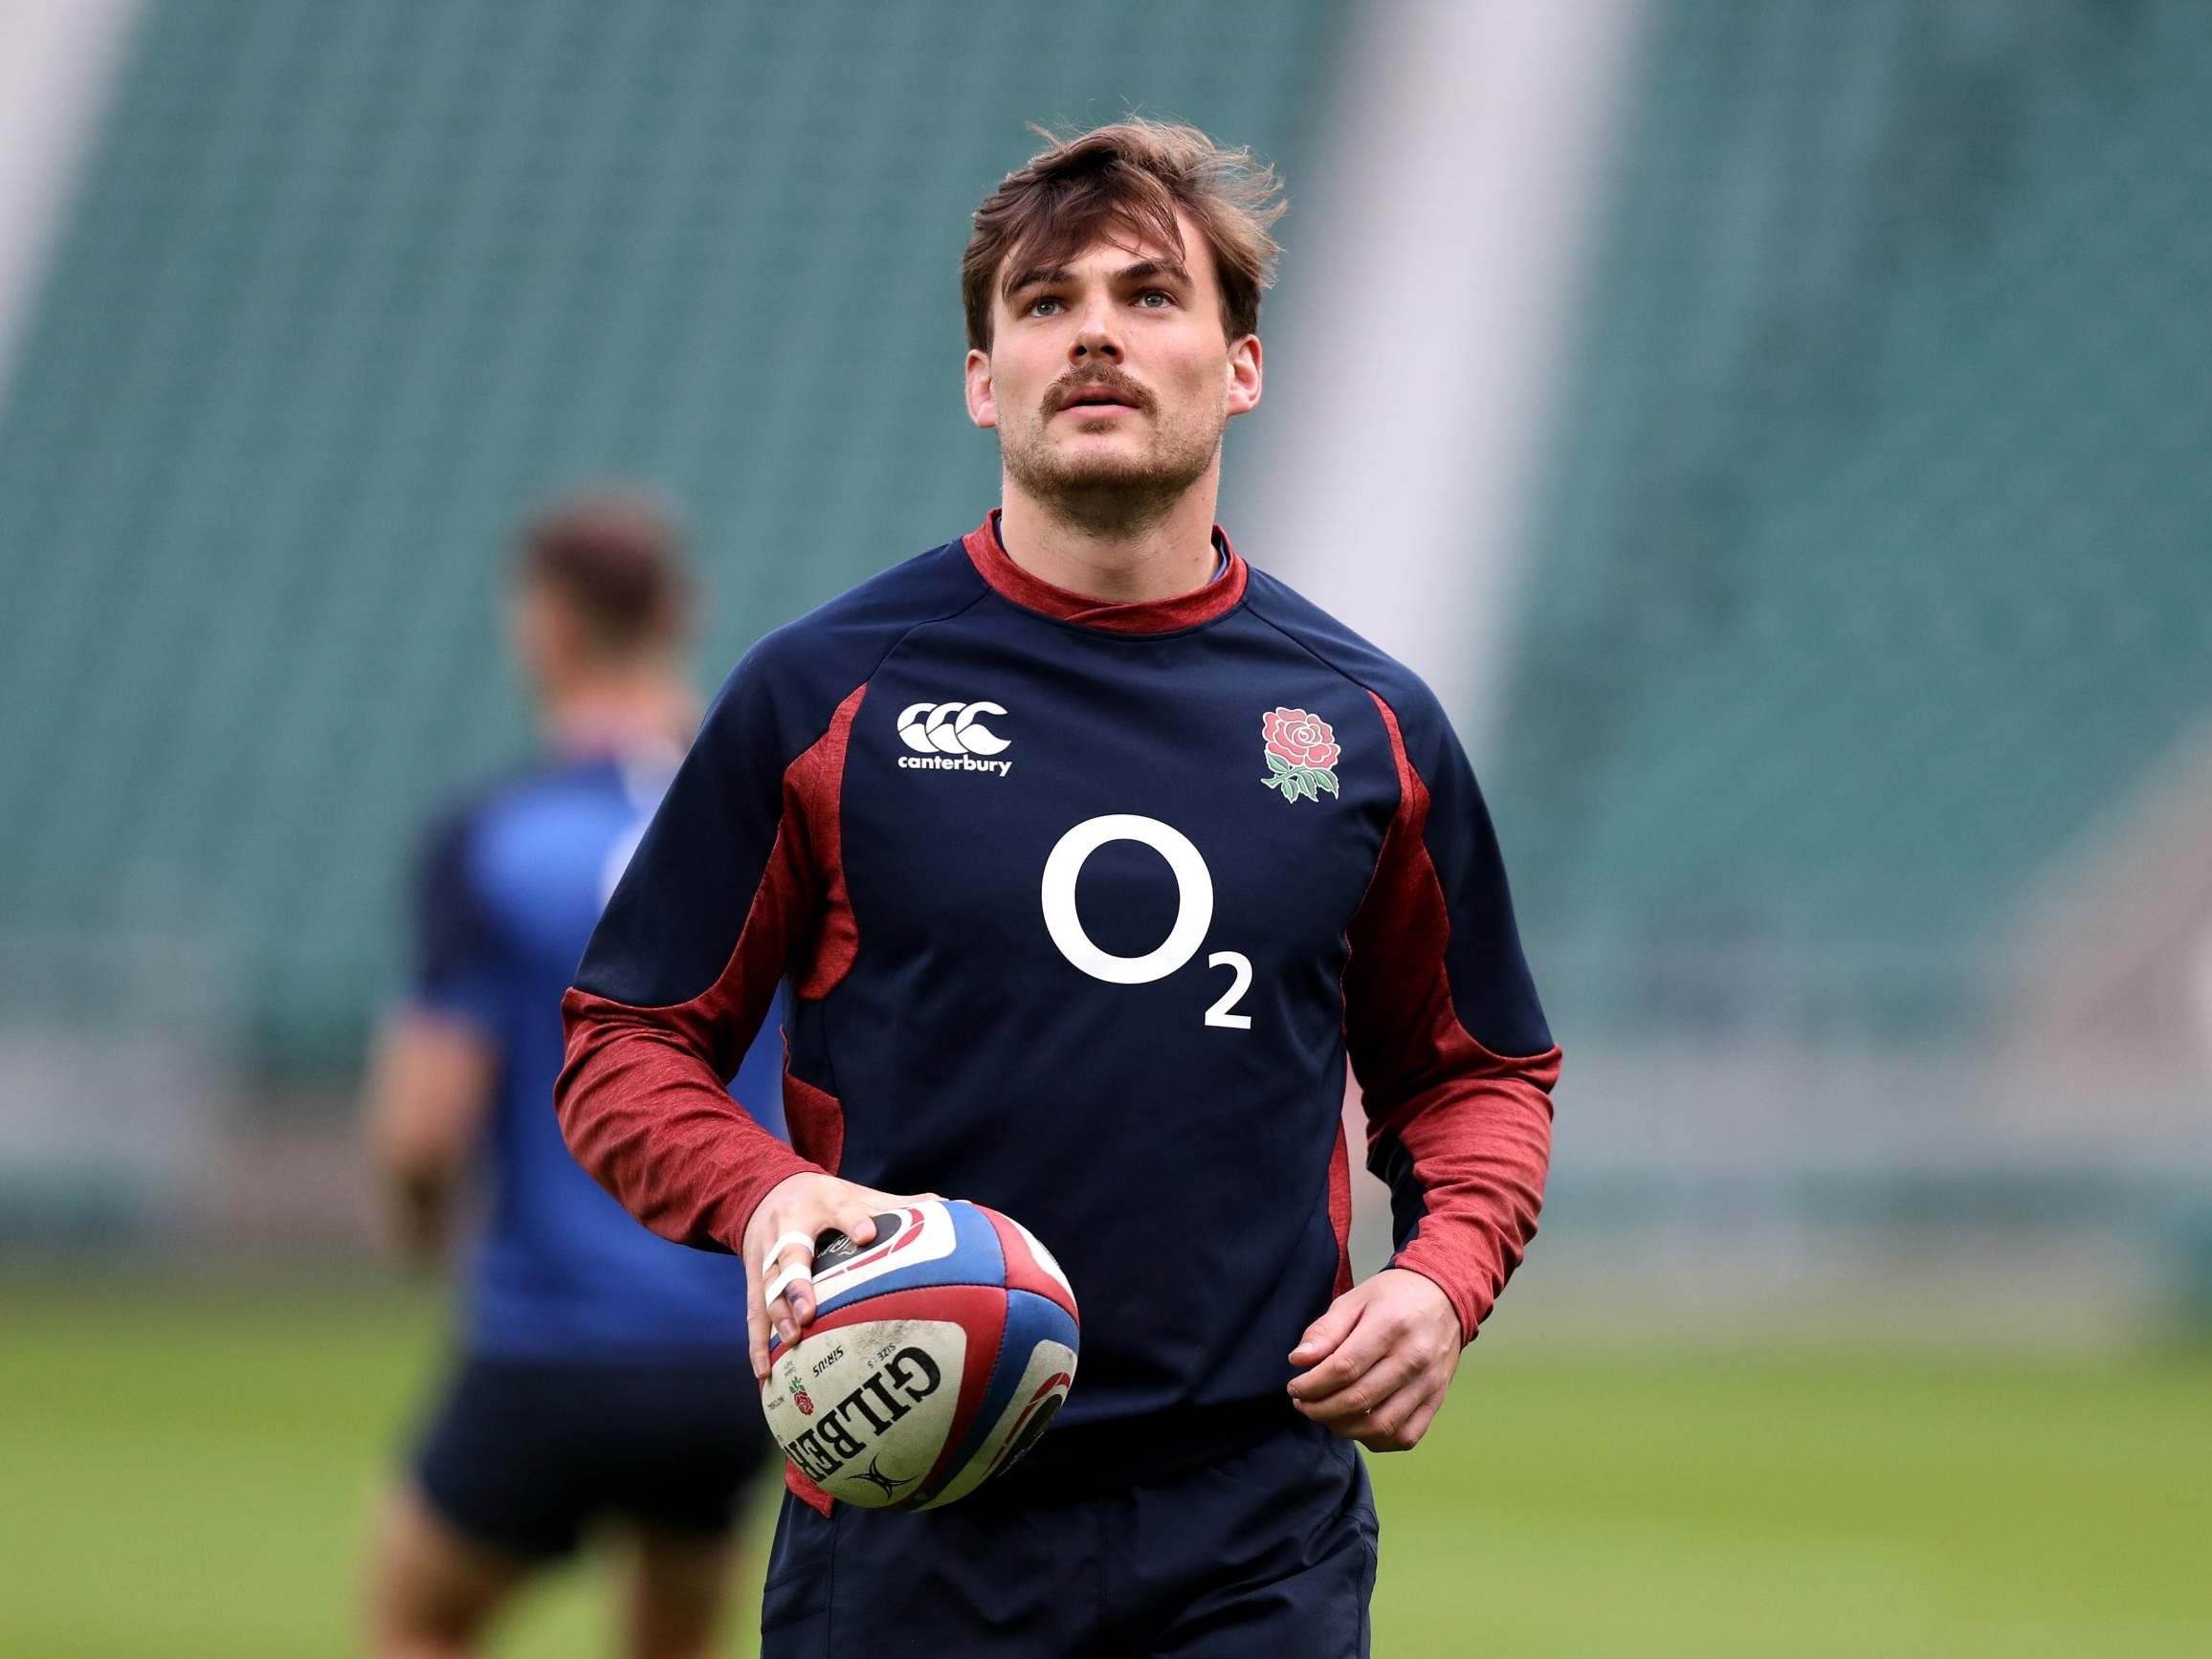 George Furbank reflects on 'intense' England introduction